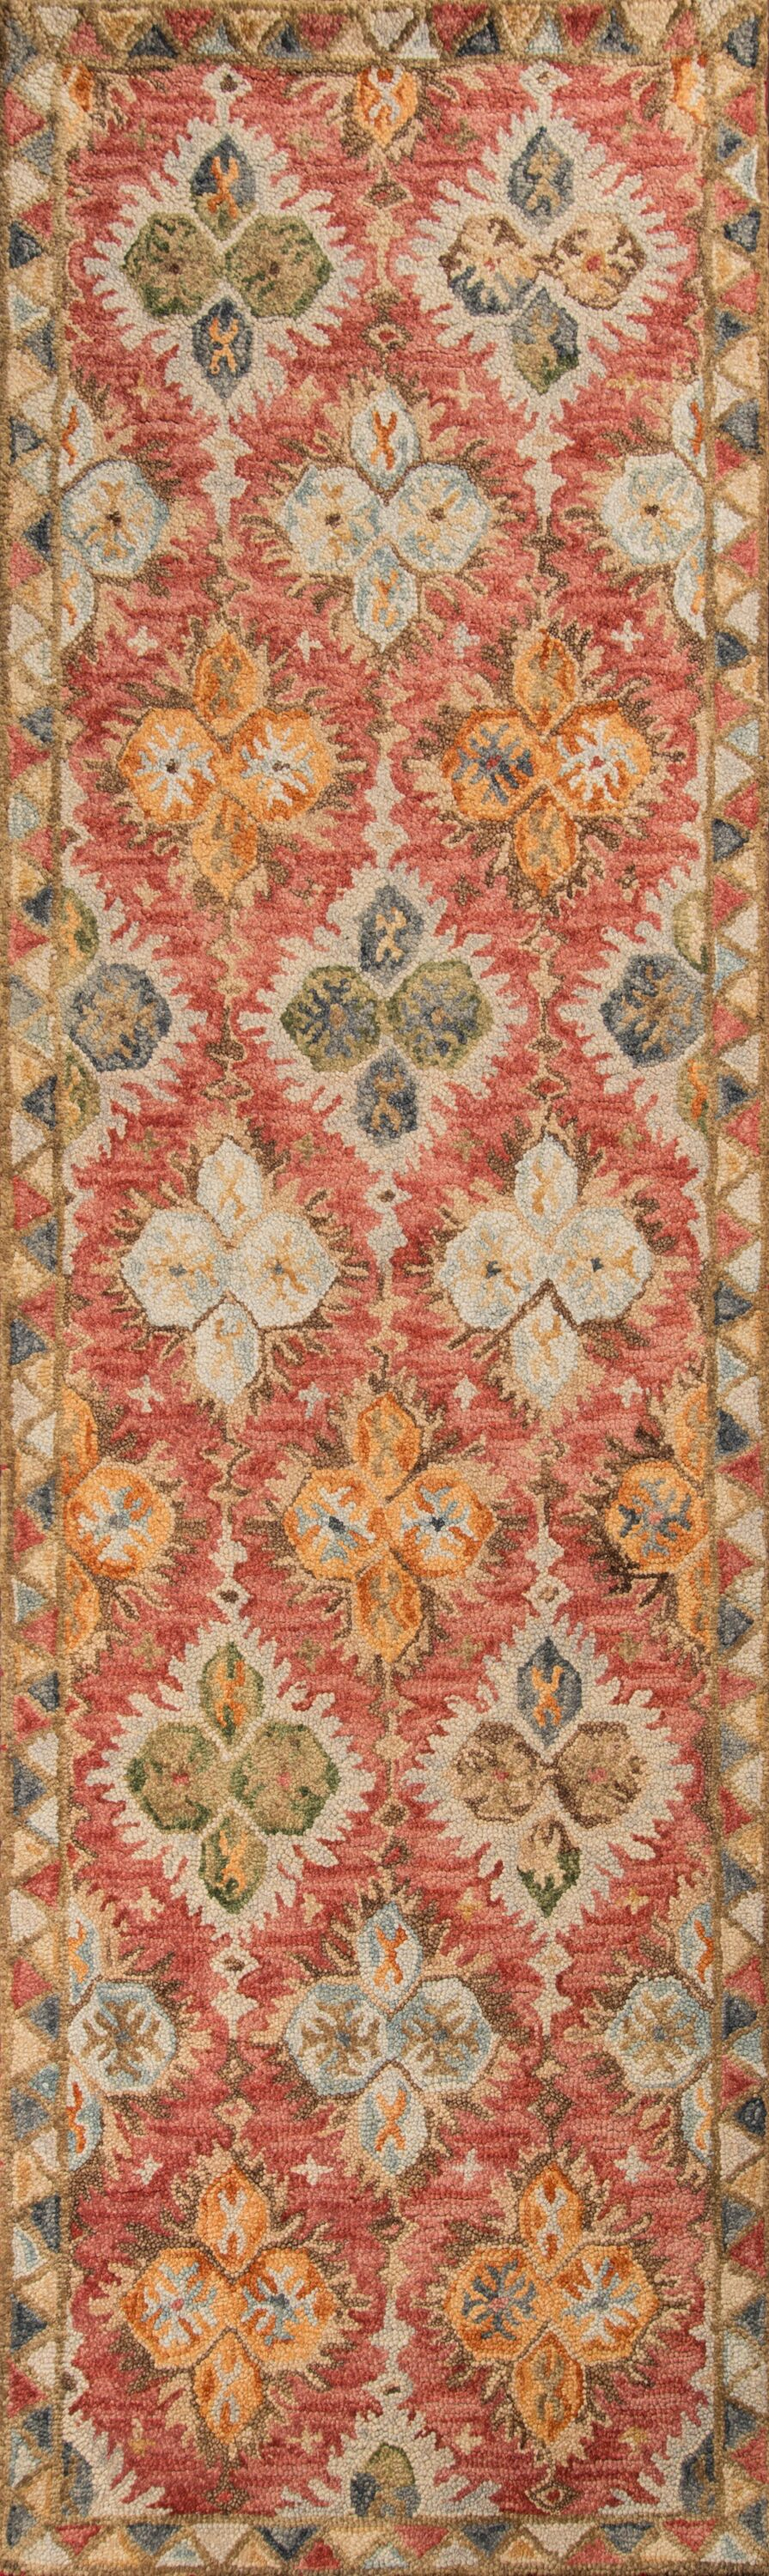 AdiletHand-Hooked Red Area Rug Rug Size: Runner 2'3